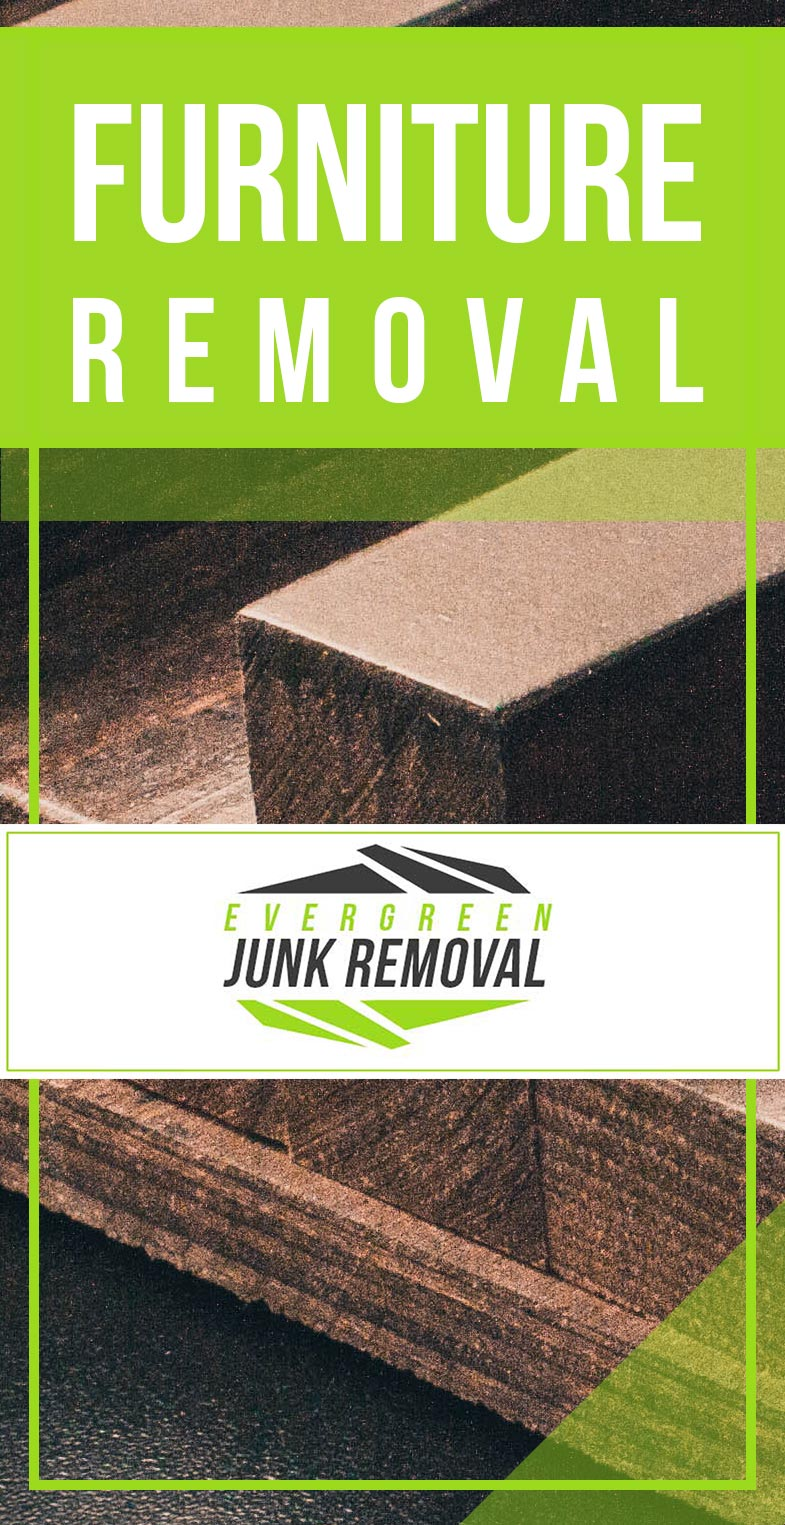 Gold Canyon Furniture Removal